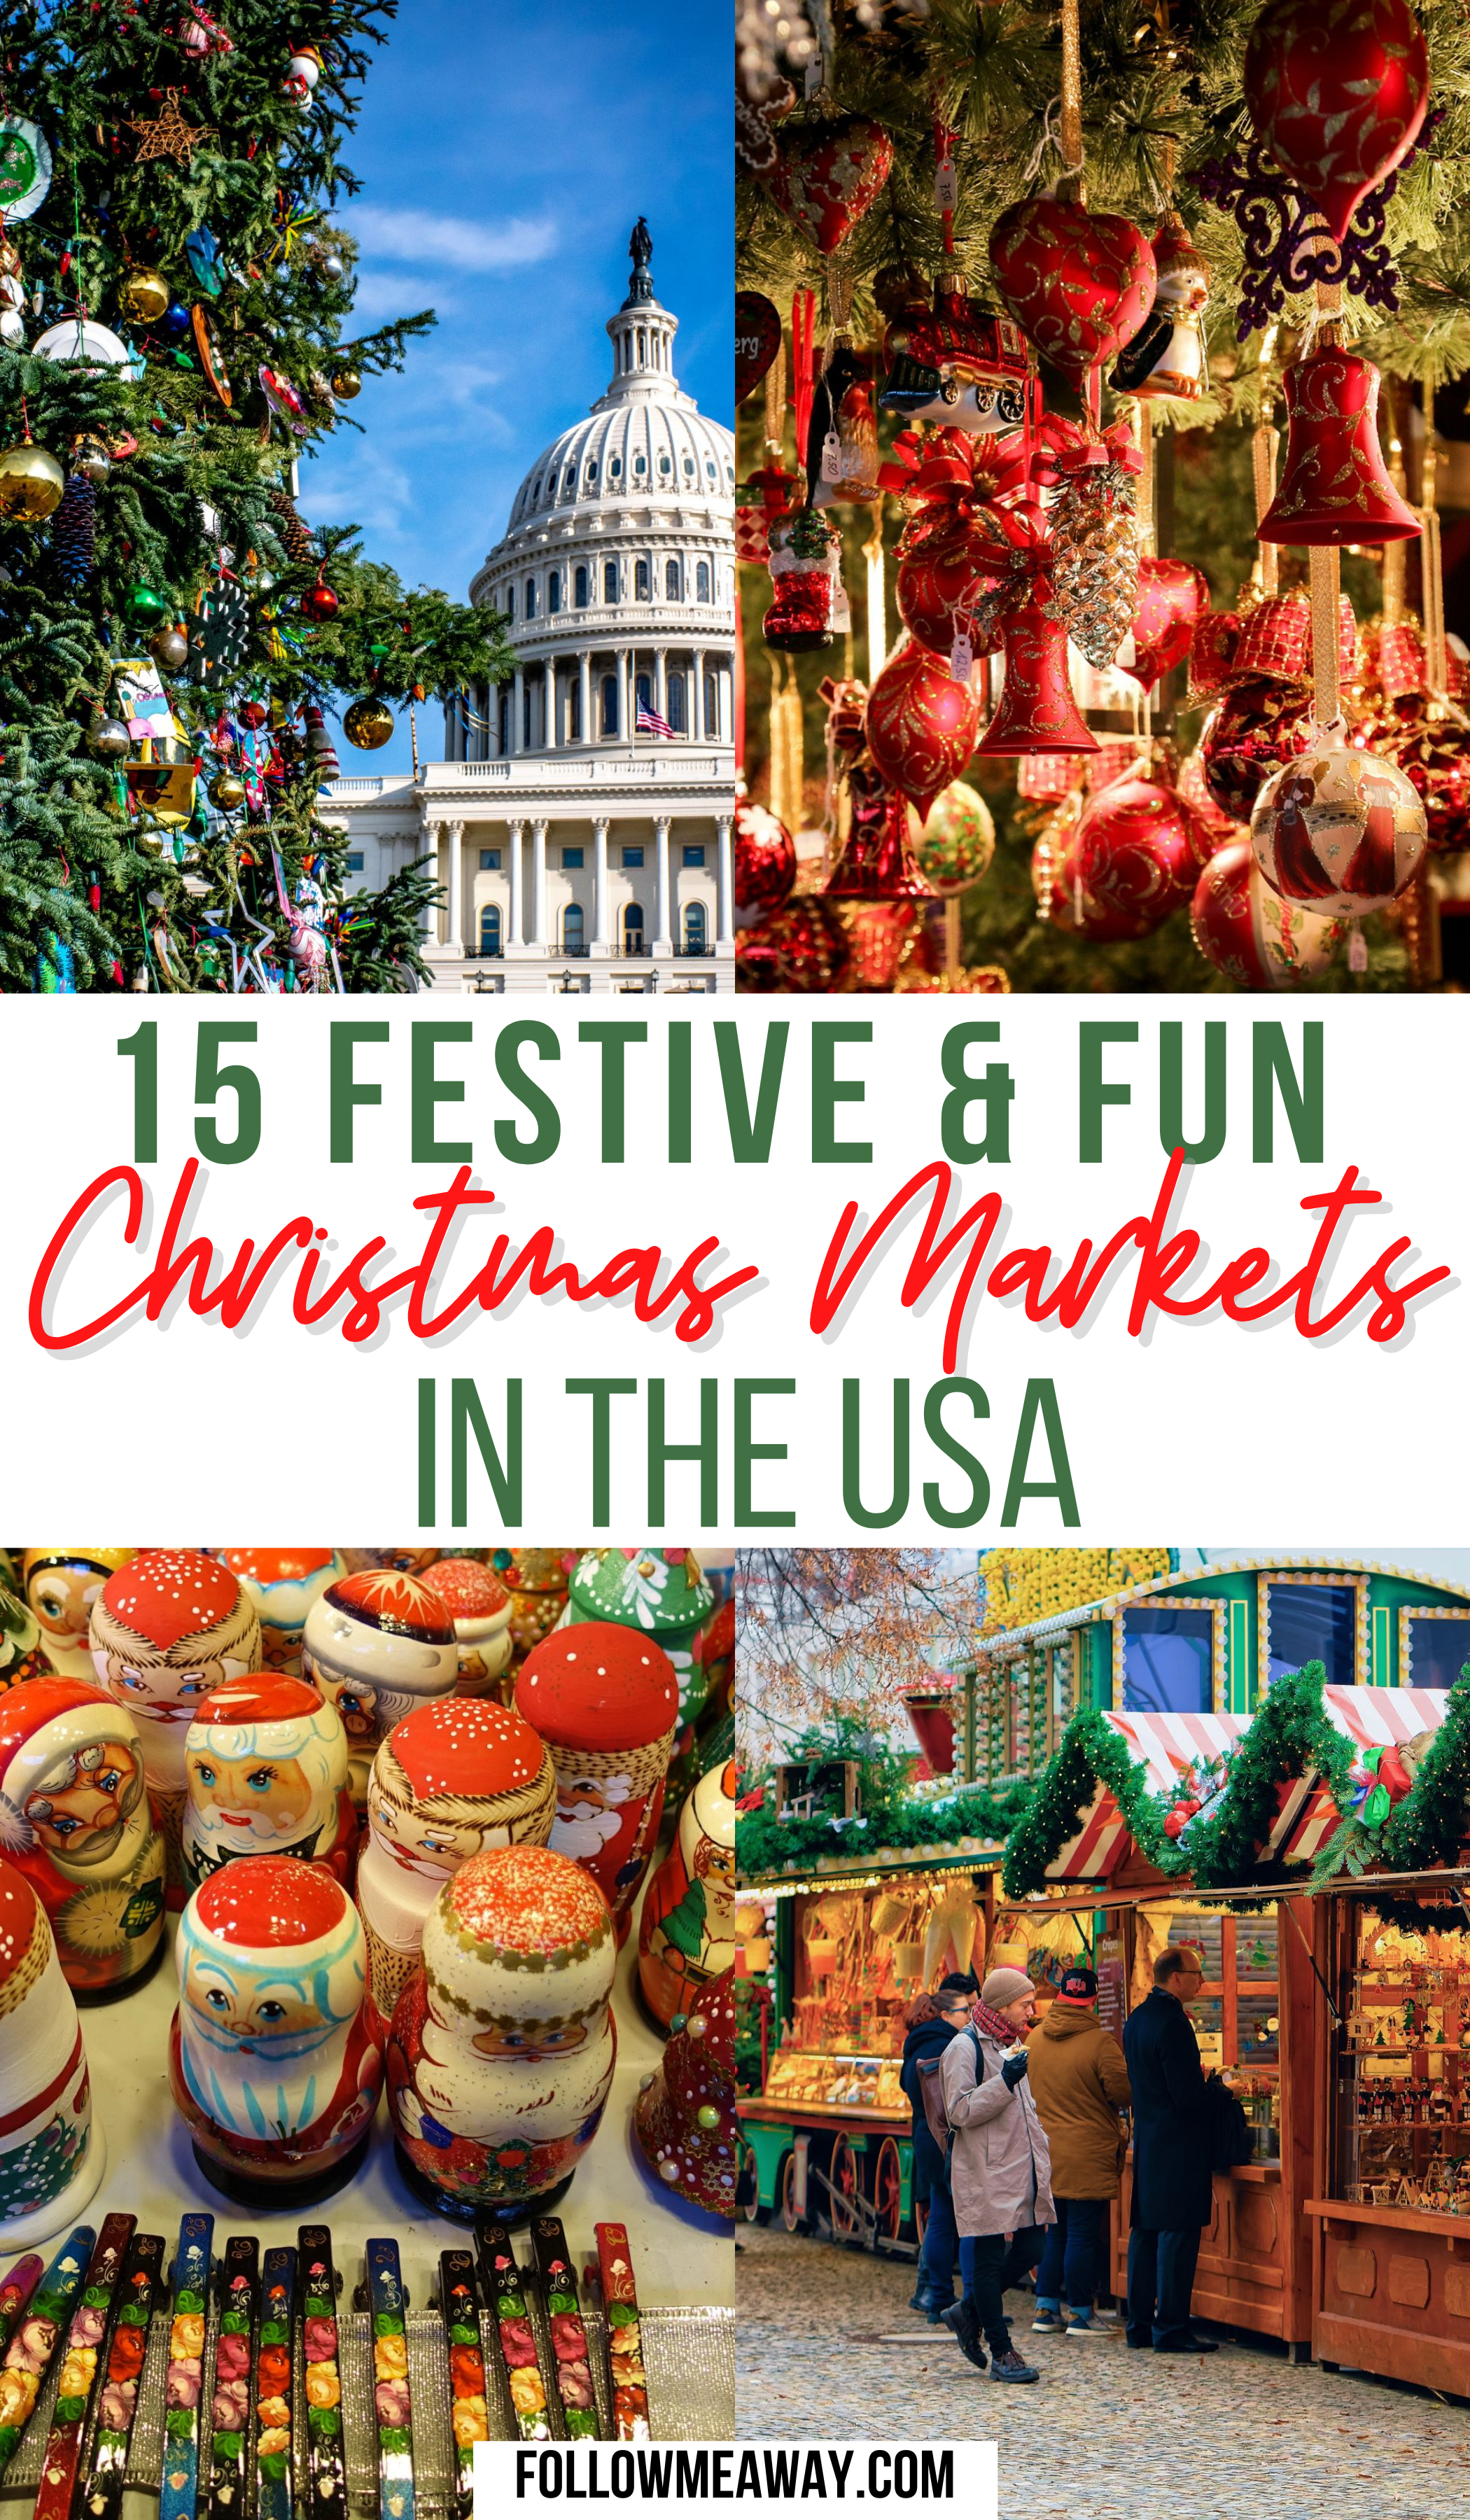 Christmas Markets In Usa 2020 15 Festive Christmas Markets In The USA in 2020